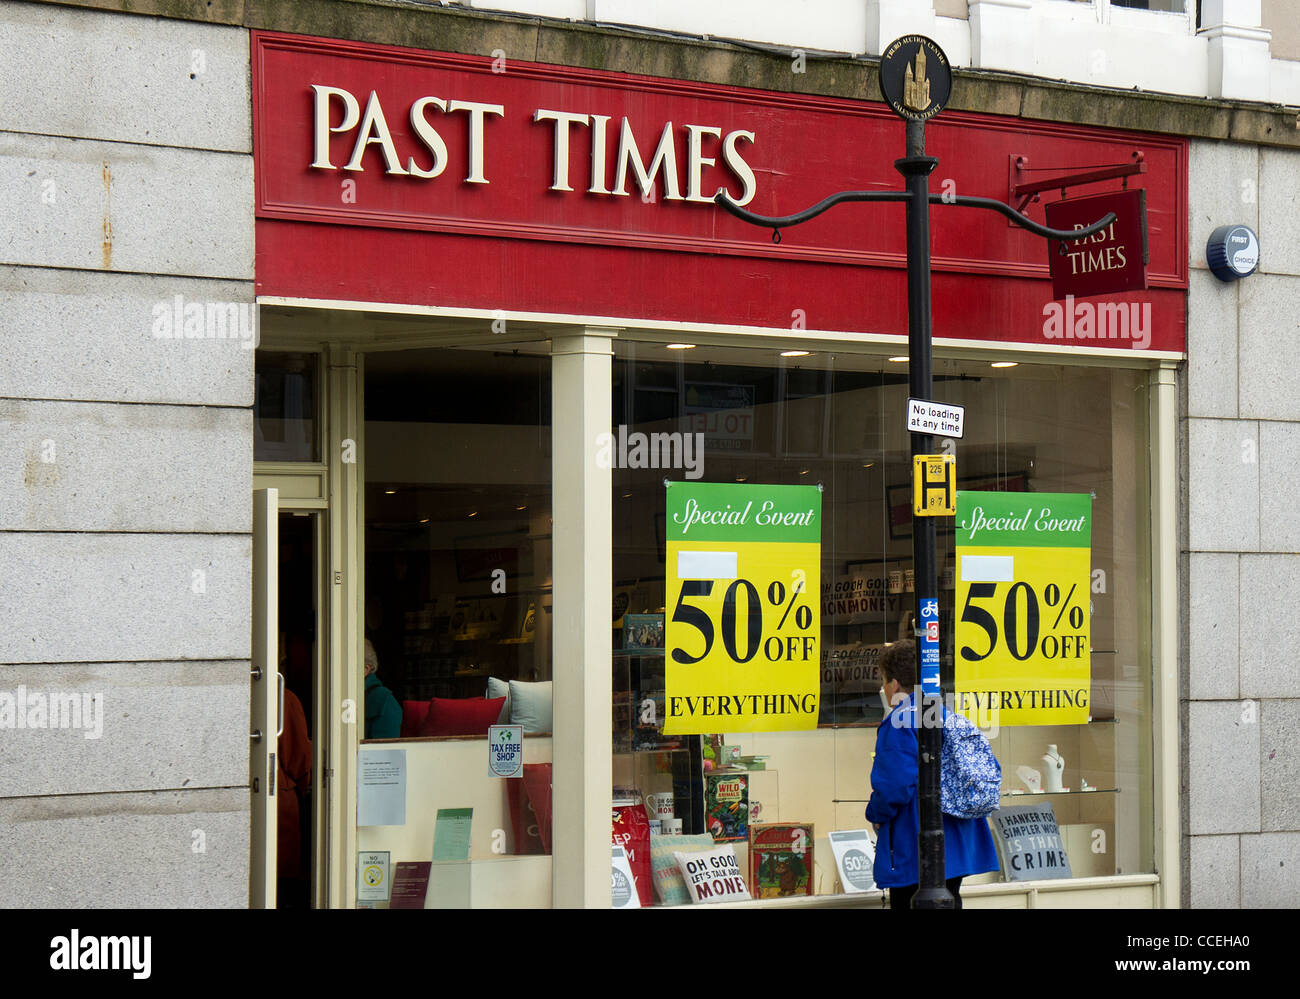 A Past Times store  UK - Stock Image